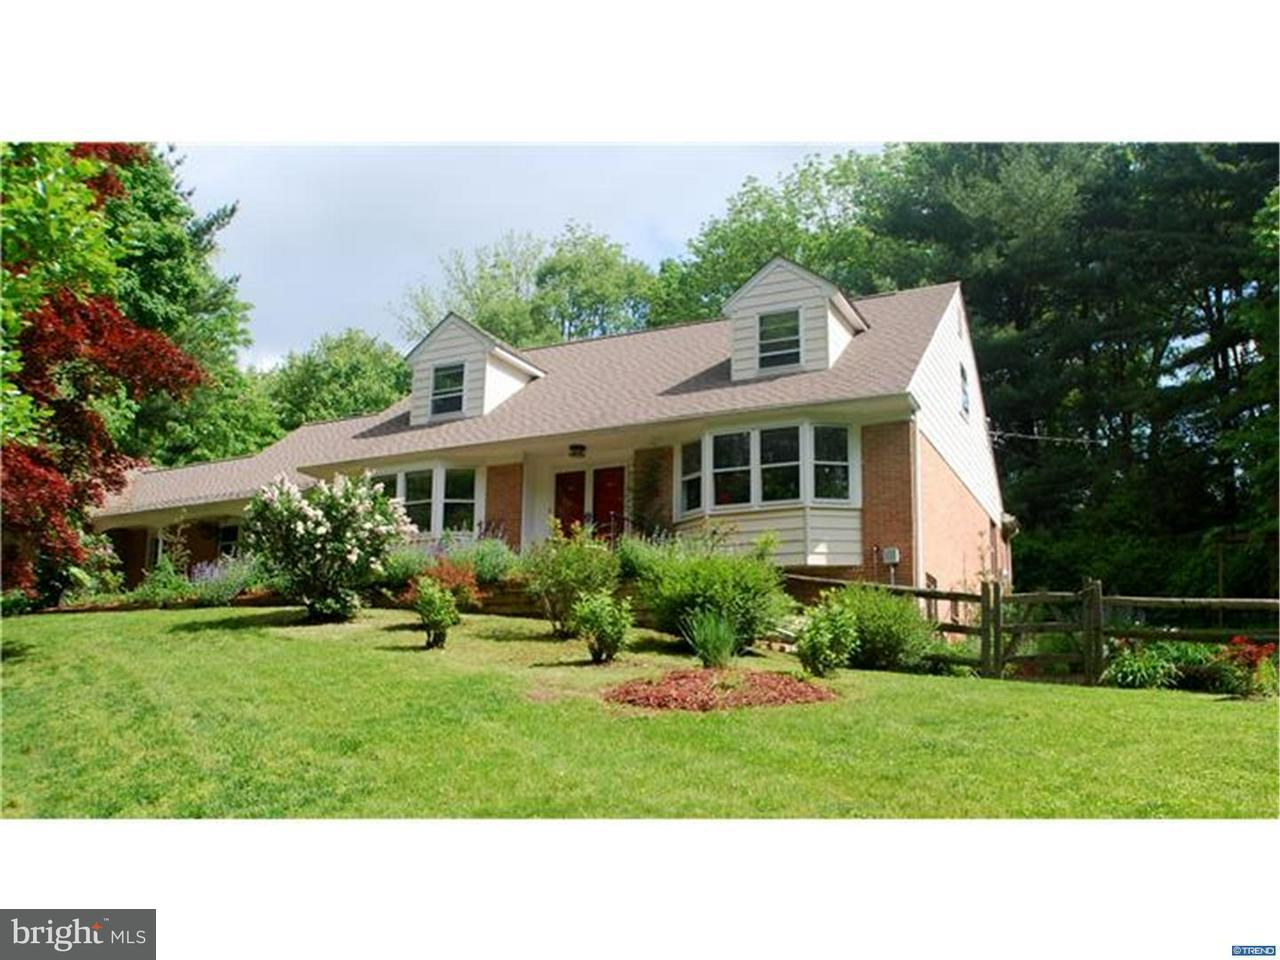 105 THISSELL LN, CHADDS FORD - Listed at $579,900,